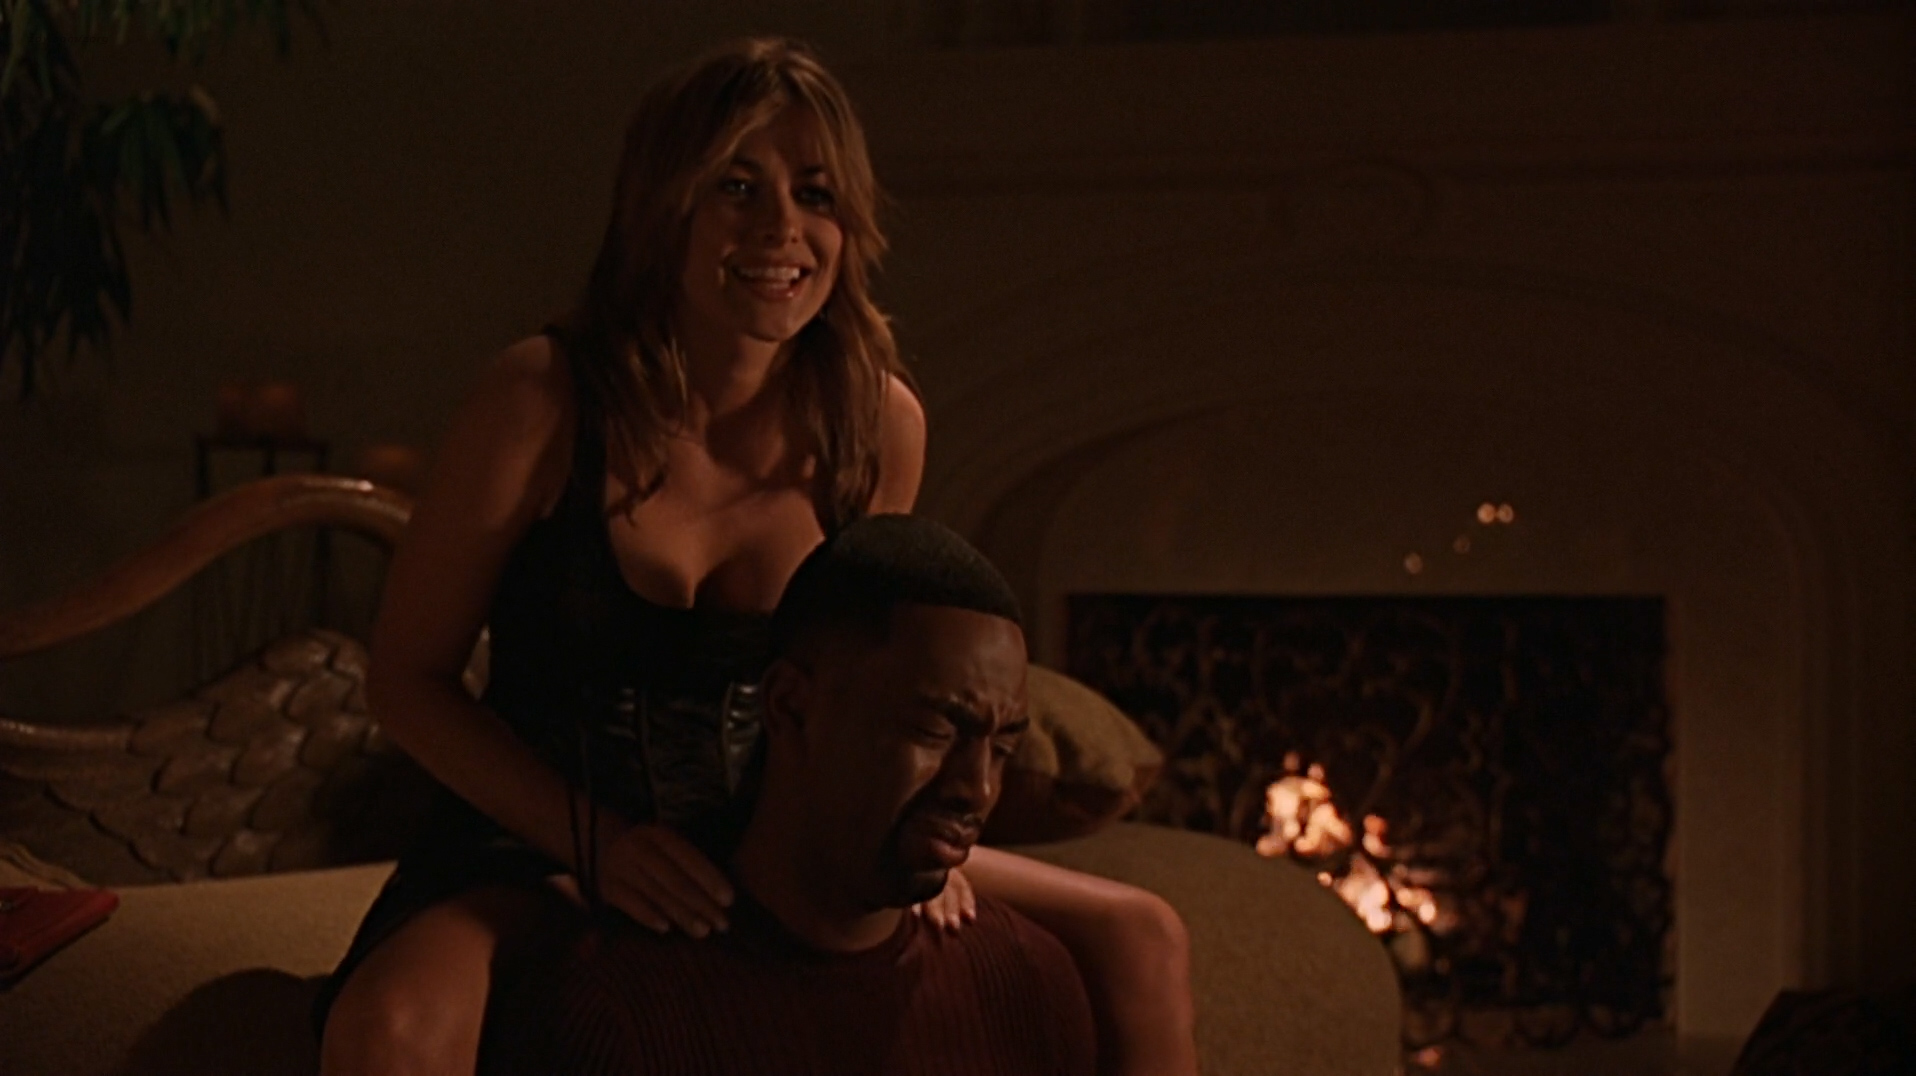 Vivica A. Fox hot in lingerie and Carmen Electra hot panties - Getting Played (2006) hd1080p Web-DL (4)